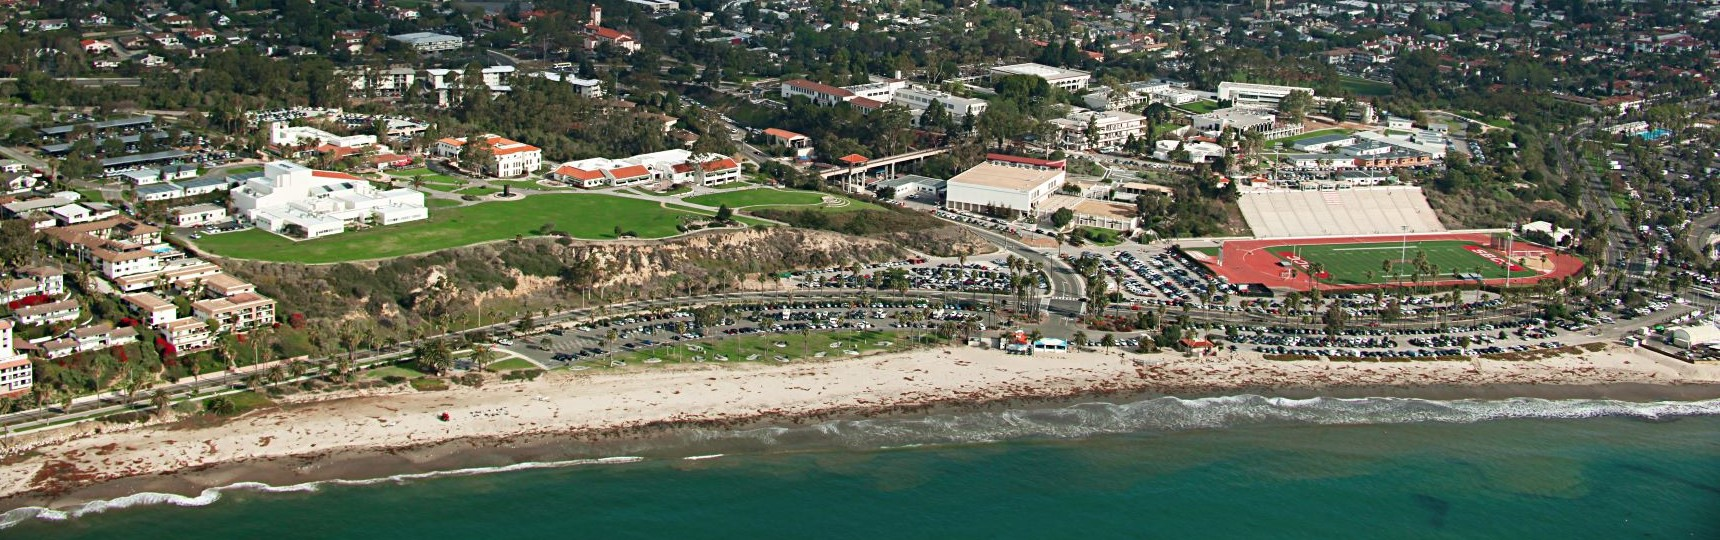 Aerial view of SBCC campus